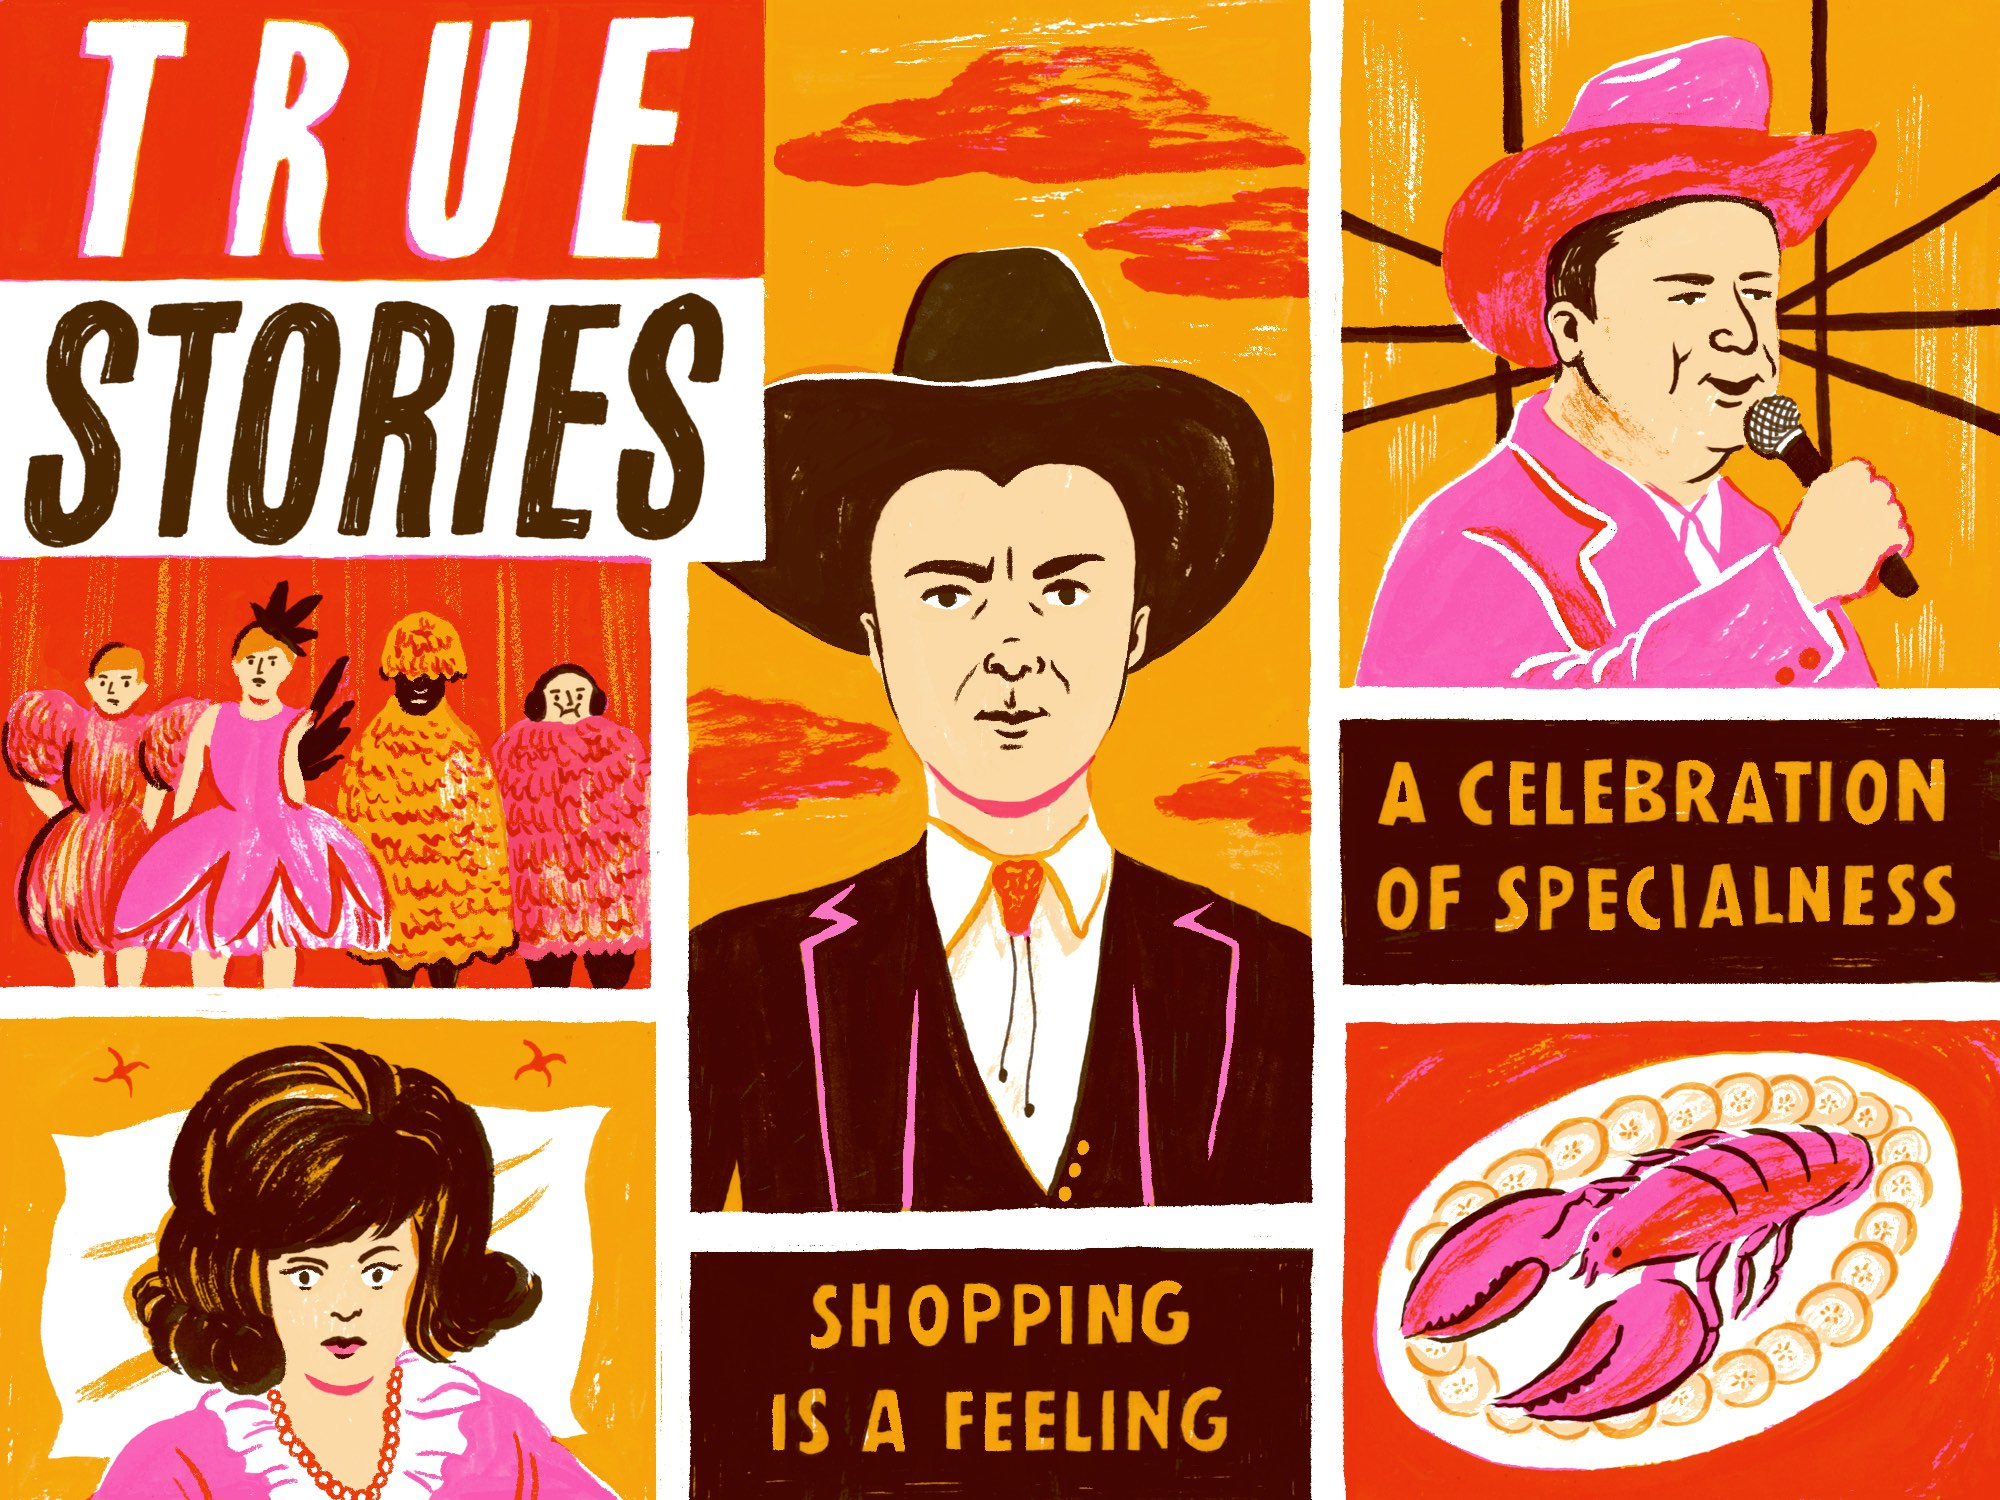 True Stories illustration by Hayley Wells